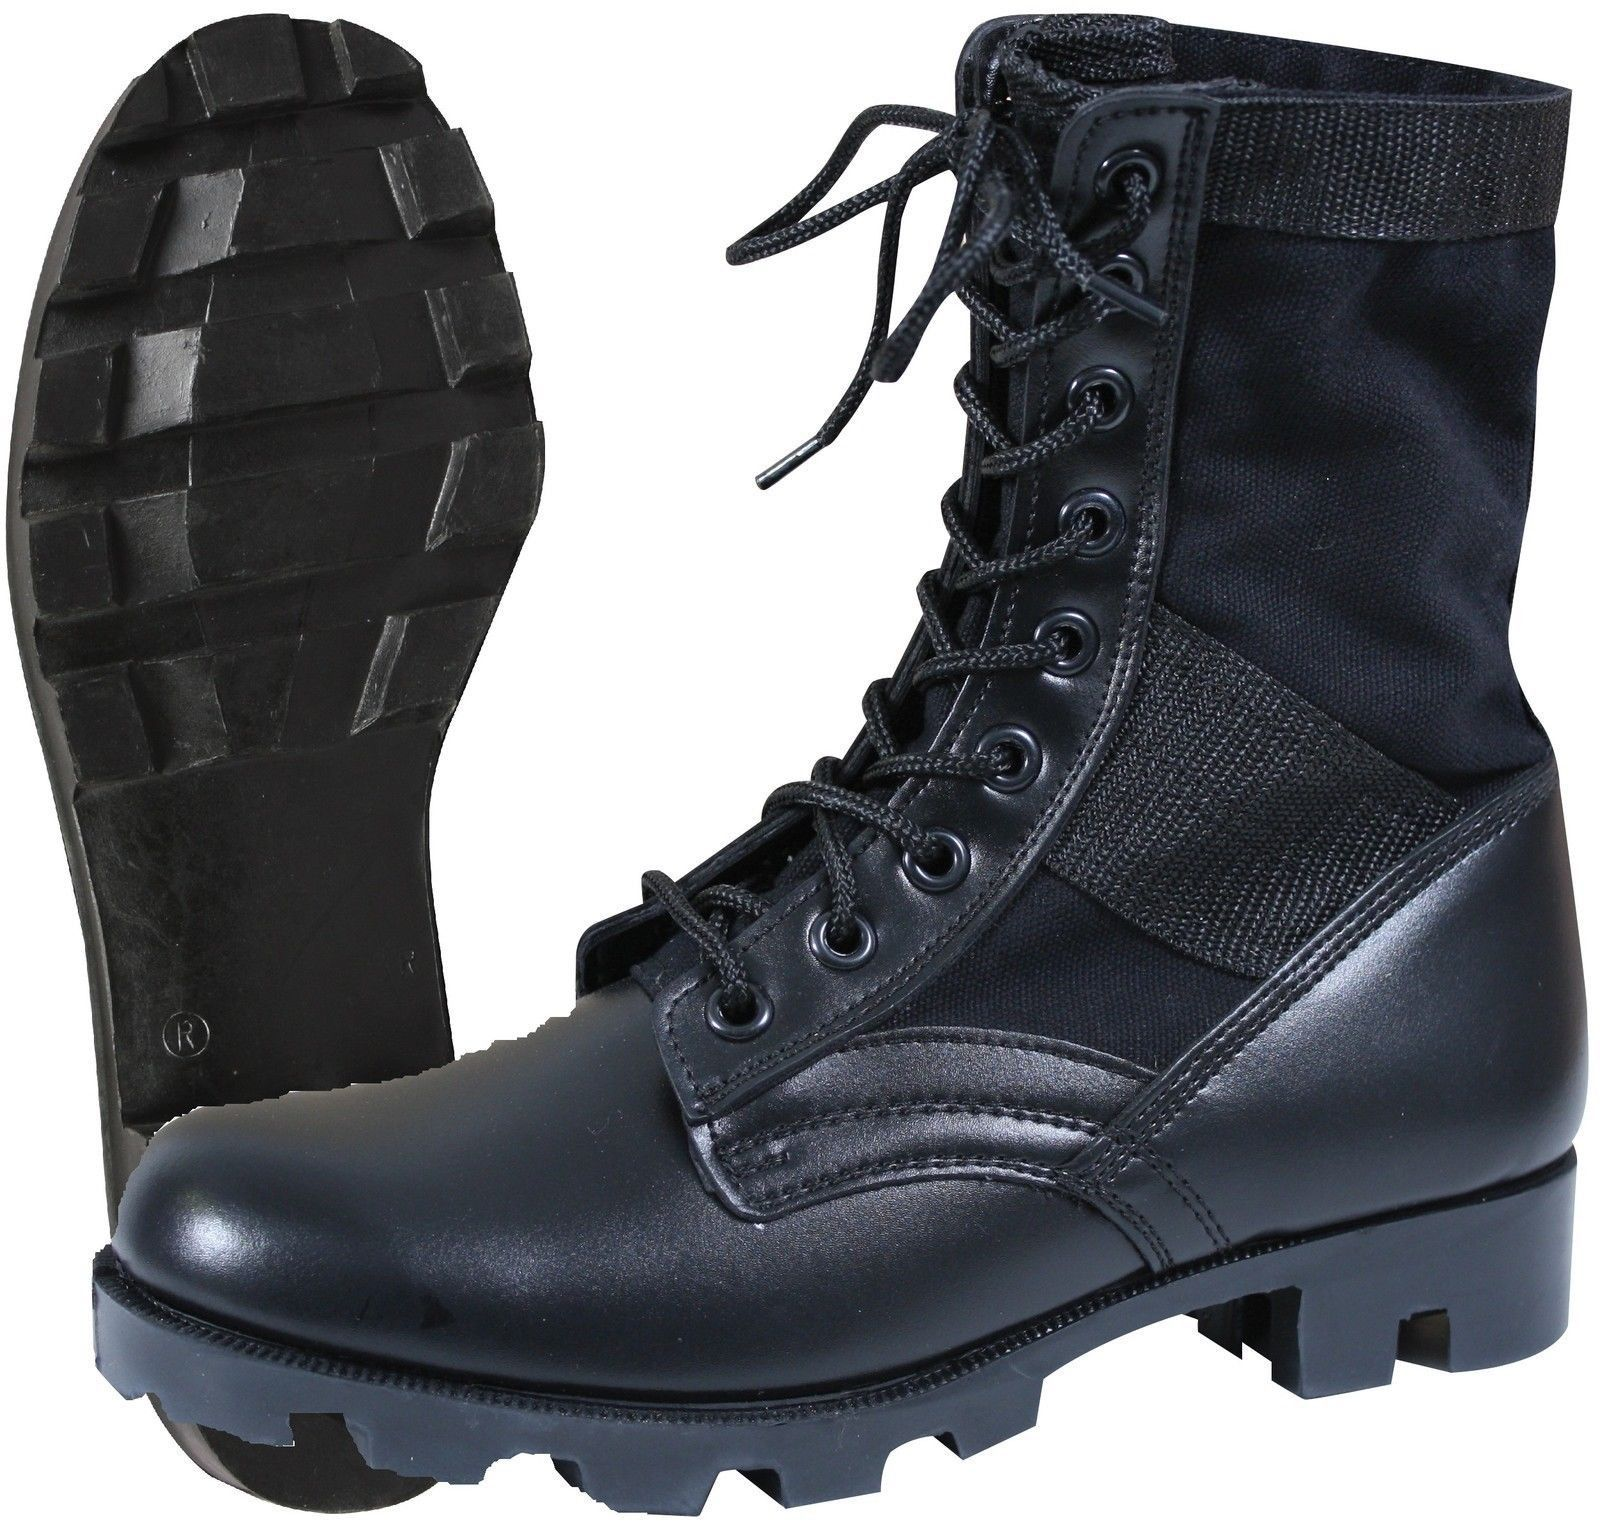 Rothco Black Steel Toe Jungle Boot - Gi Style Footwear Products